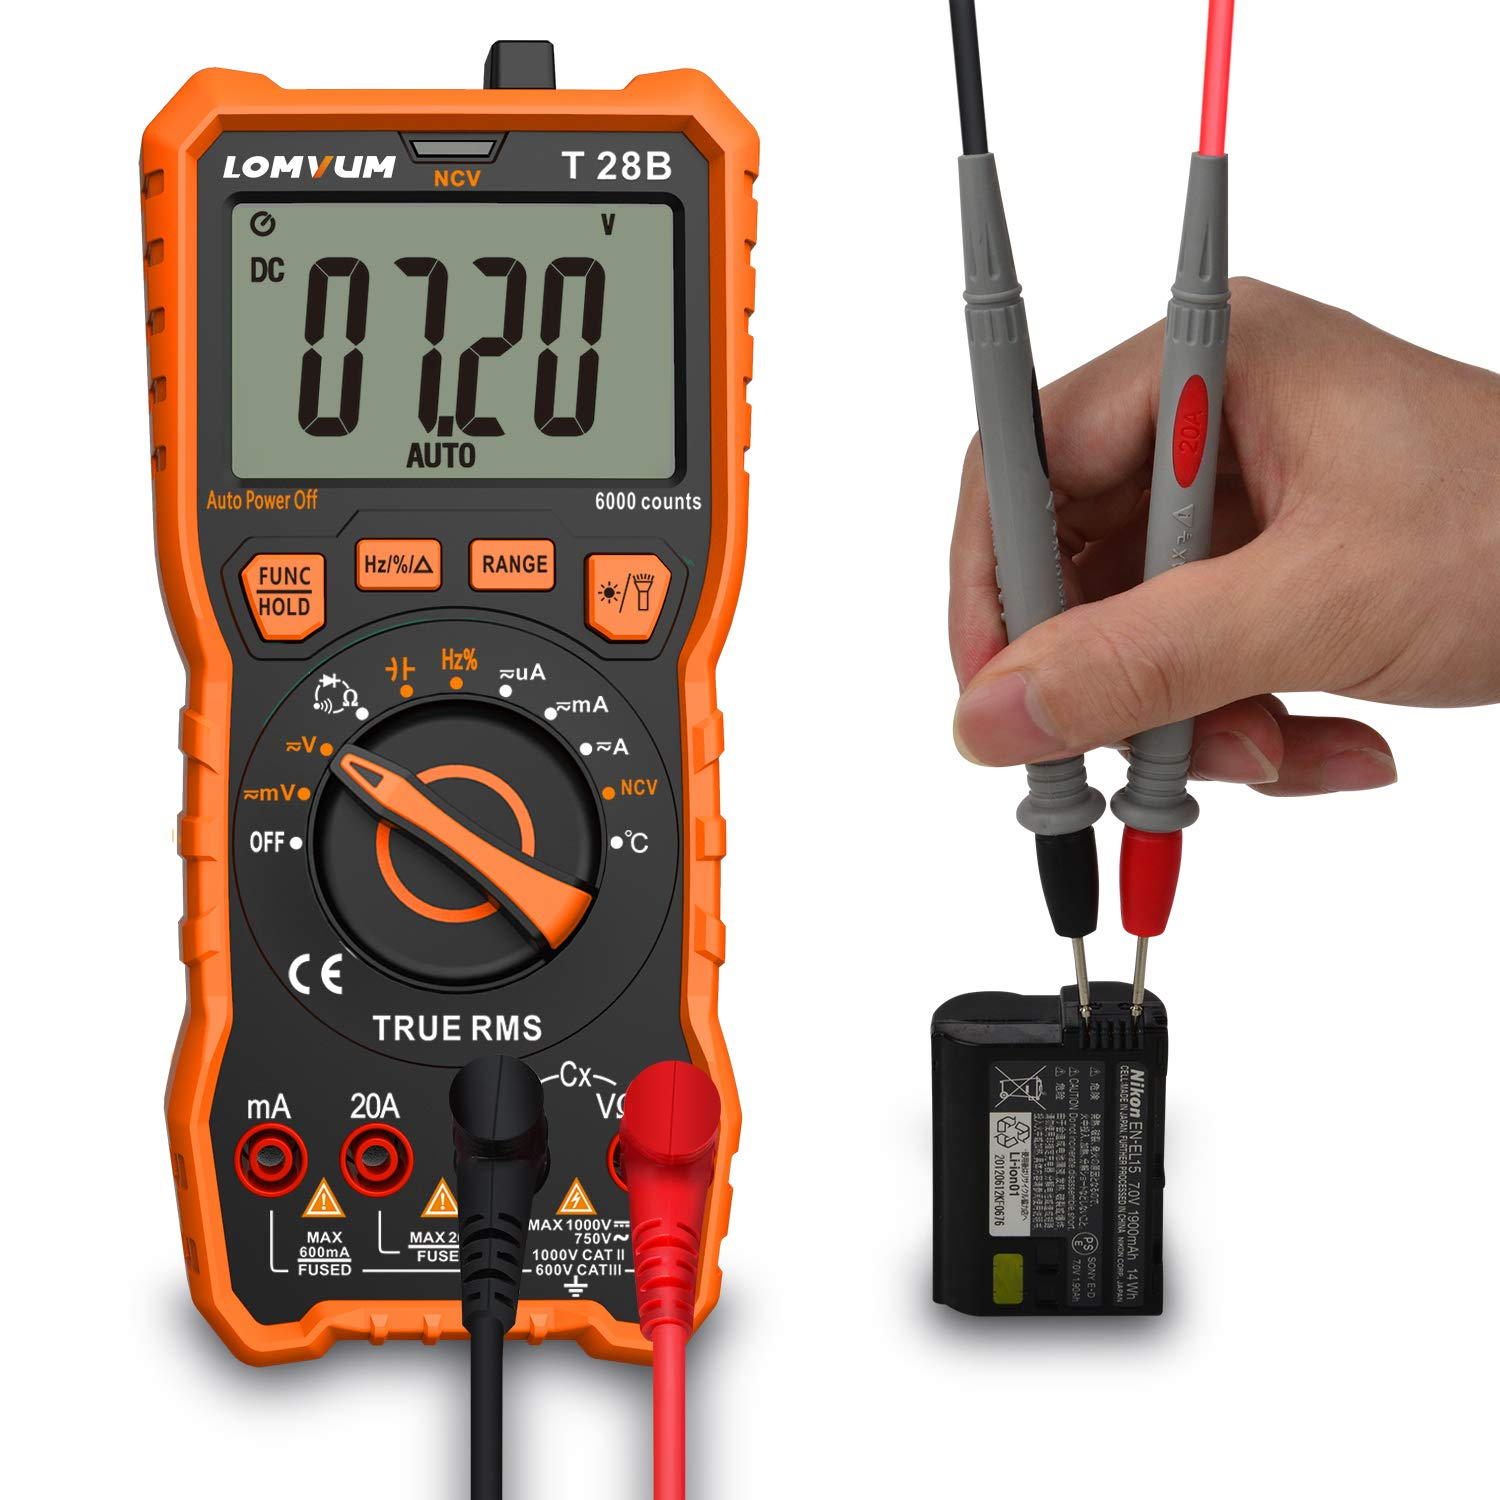 Auto-Ranging Digital Multimeter, 6000 Counts Electrical Tester AC/DC Voltage Current Detector, NCV, Resistance, Capacitance, Diode Electronic, Duty Cycle Tester, 2.7 Inch LCD